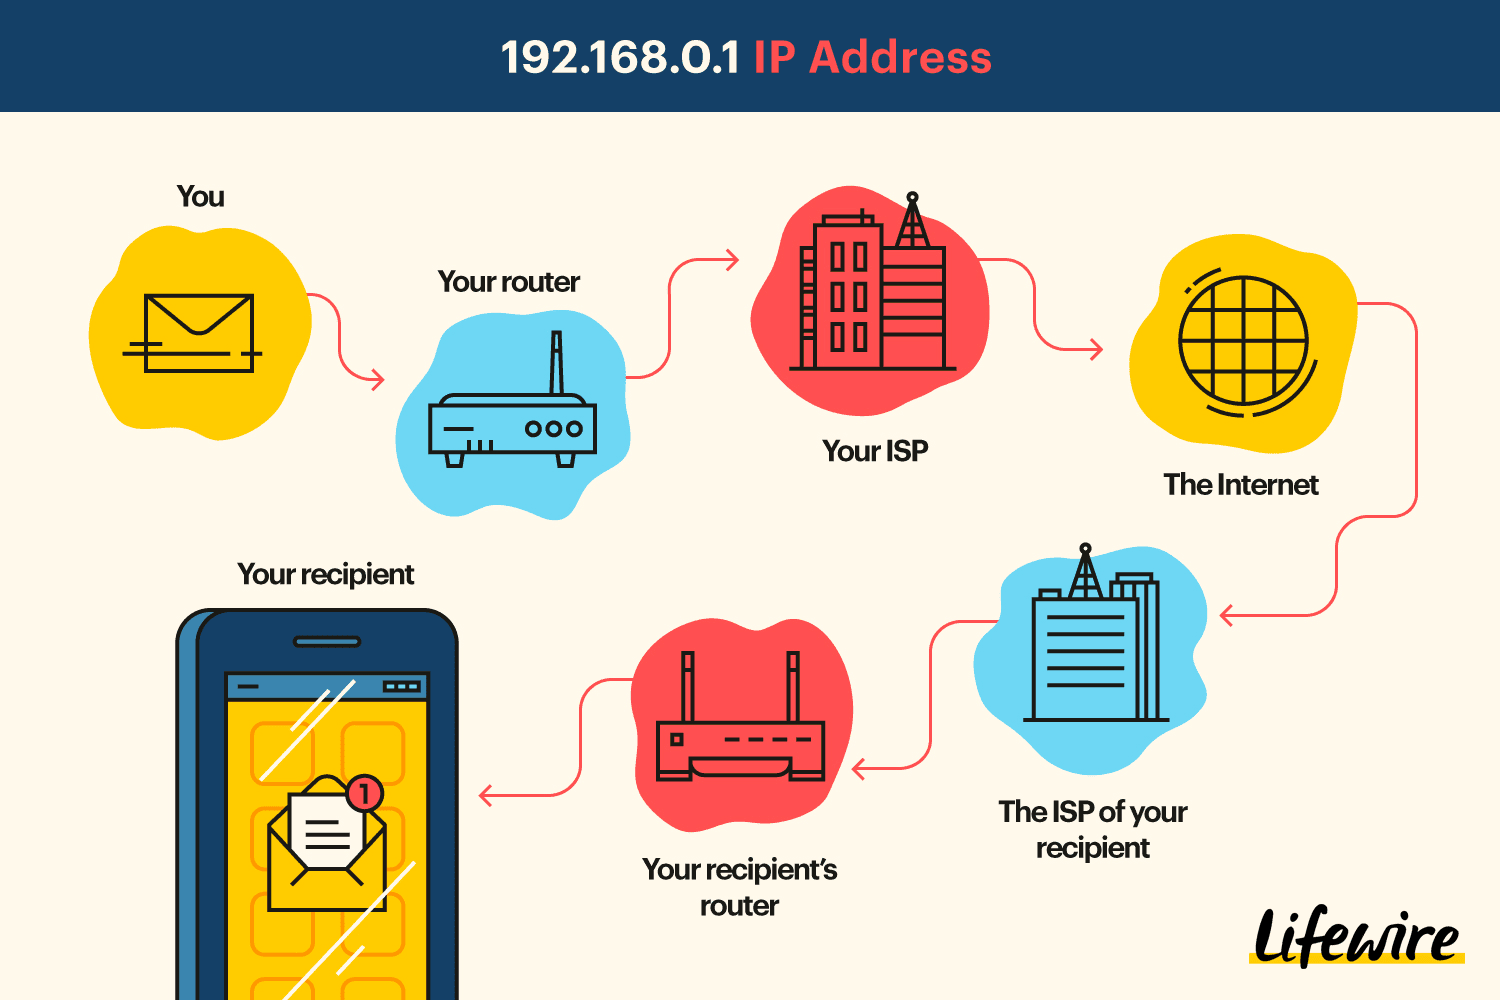 An illustration of the route a message might take through a router with the  IP address